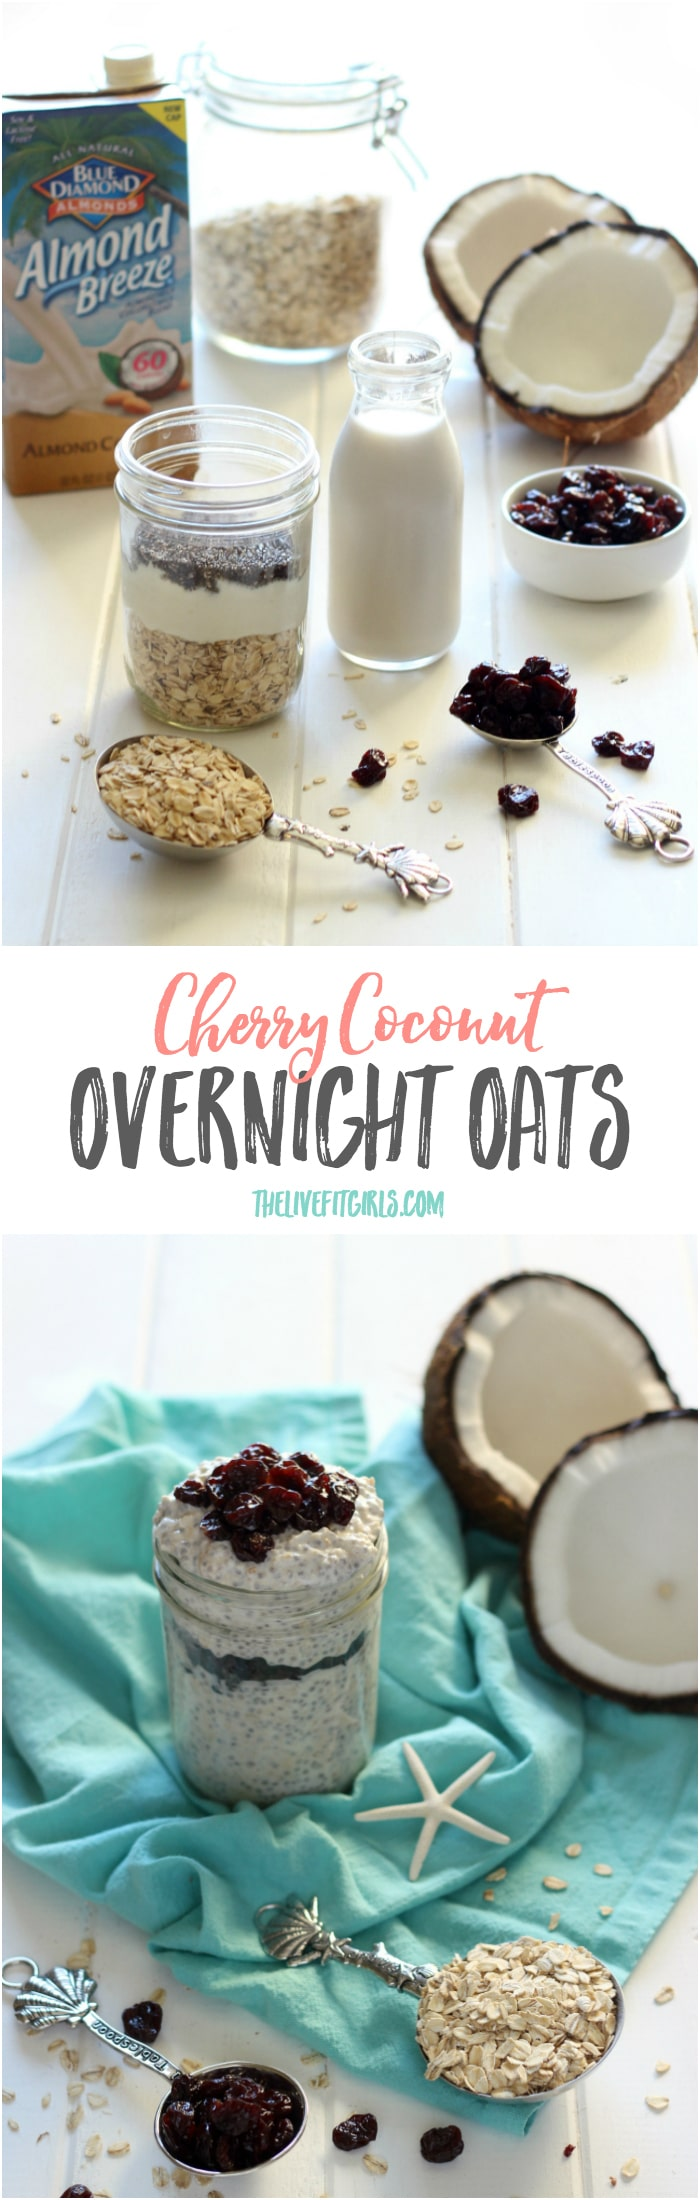 Cherry Coconut Overnight Oats Pin